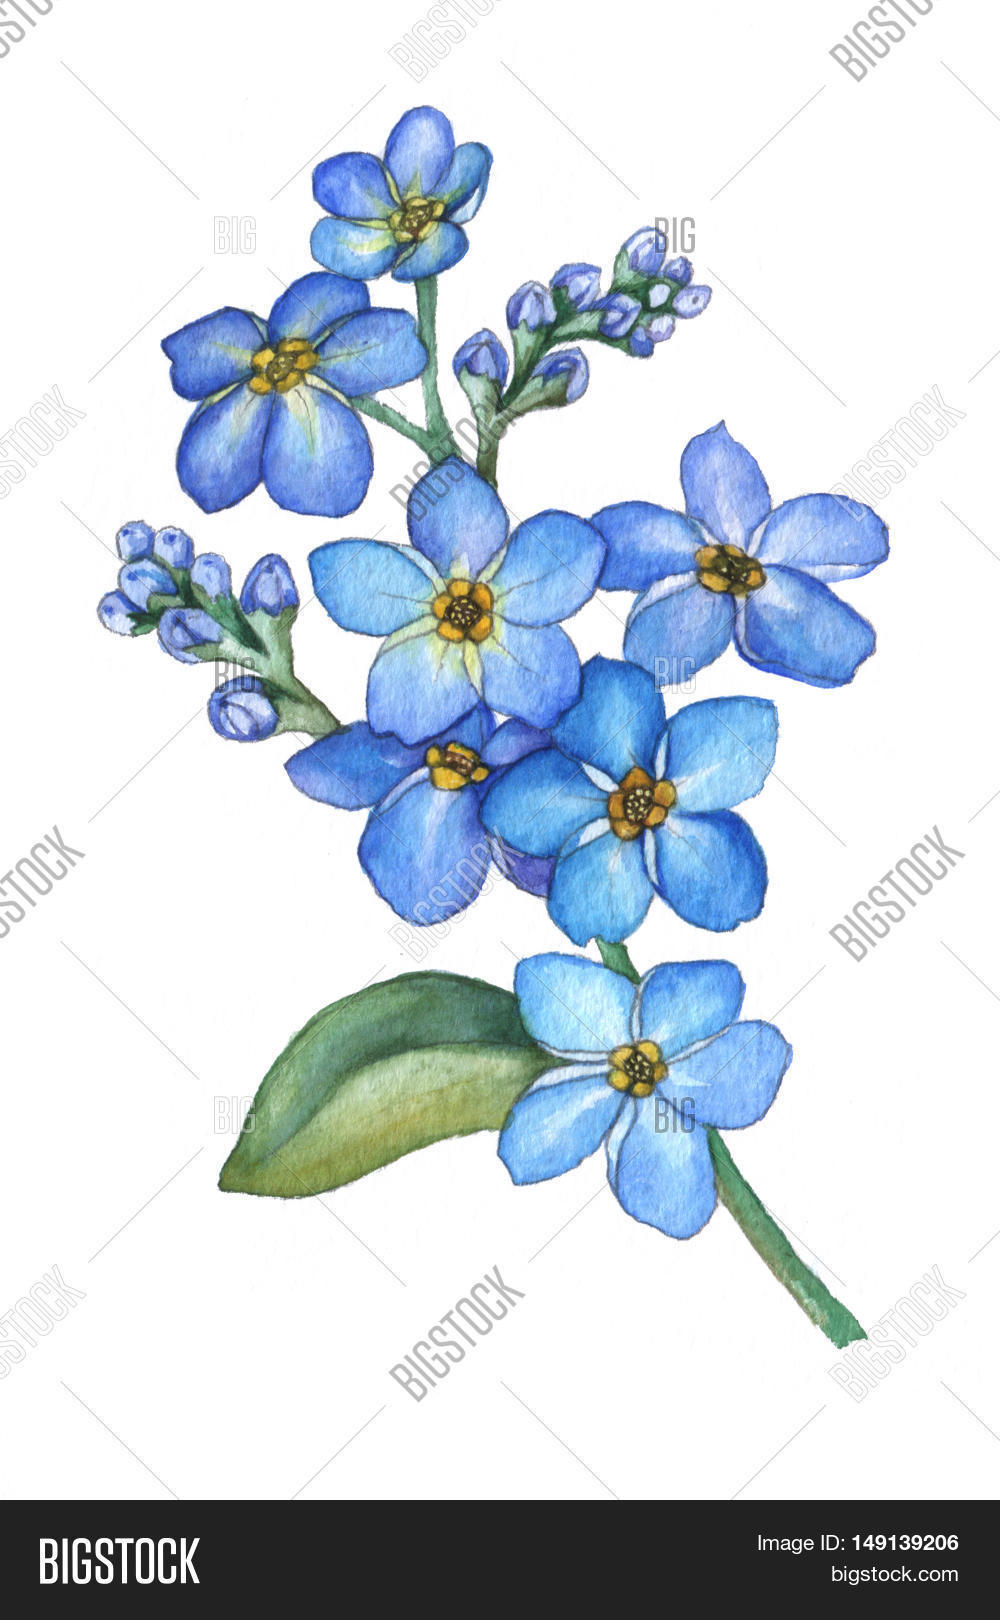 Forget Me Not Flowers Image Photo Free Trial Bigstock